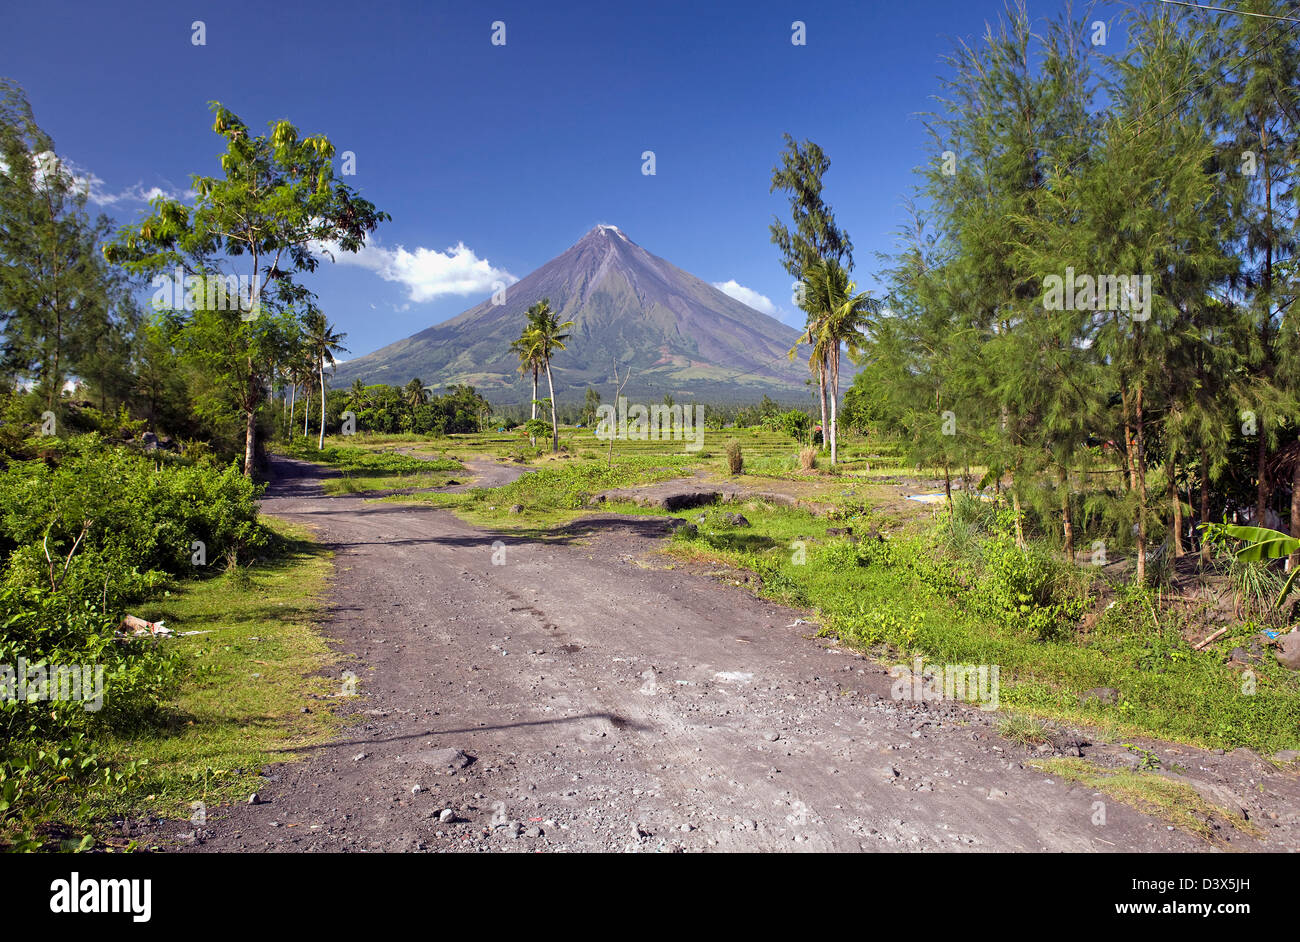 Mount Mayan volcano near Legazpi City in the Bicol region of Luzon in the Philippine Islands. - Stock Image